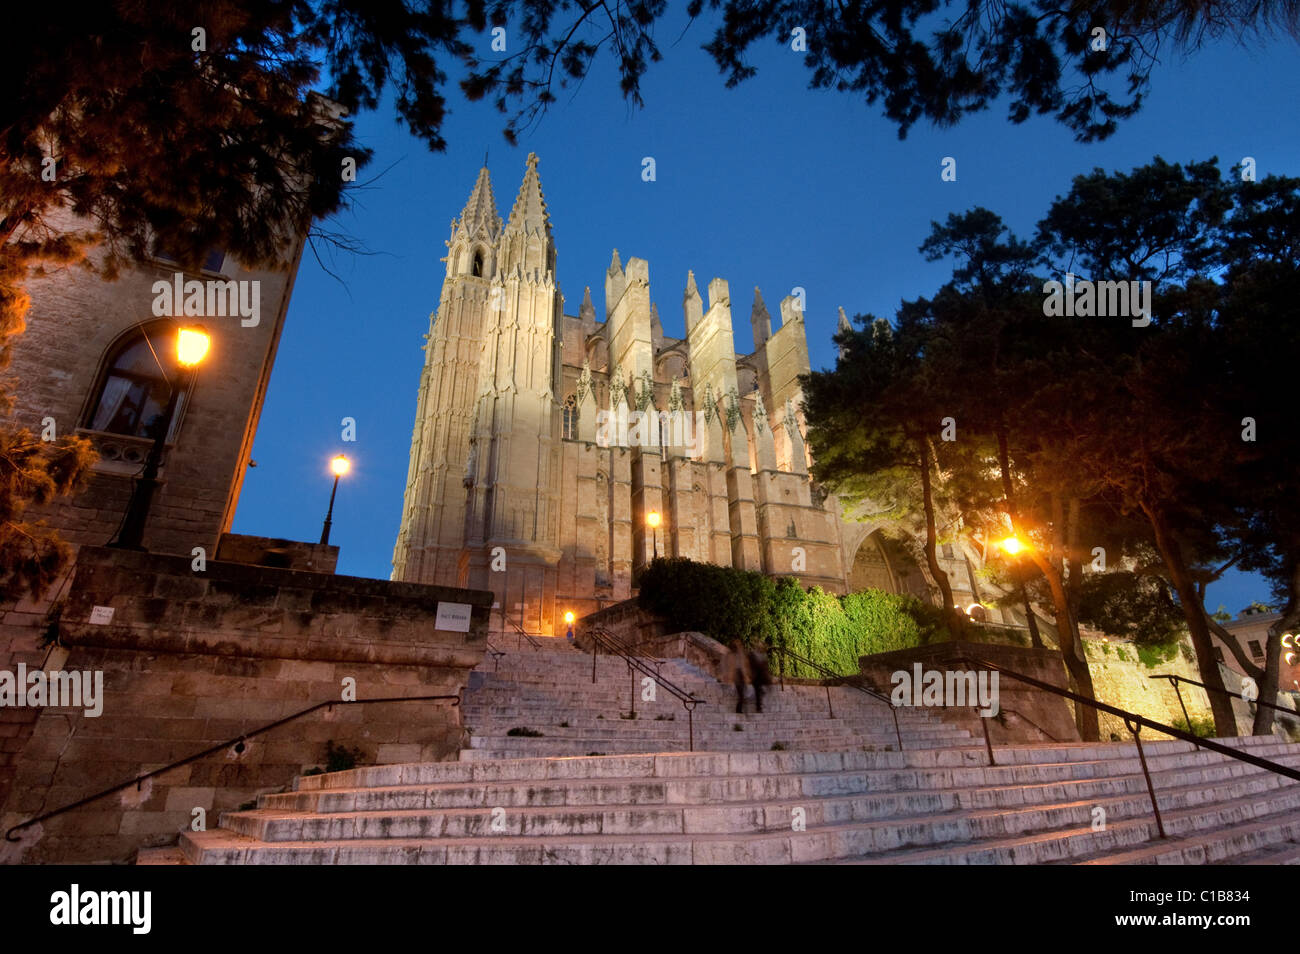 ES - MALLORCA: La Seu Cathedral at Palma de Mallorca, Spain - Stock Image